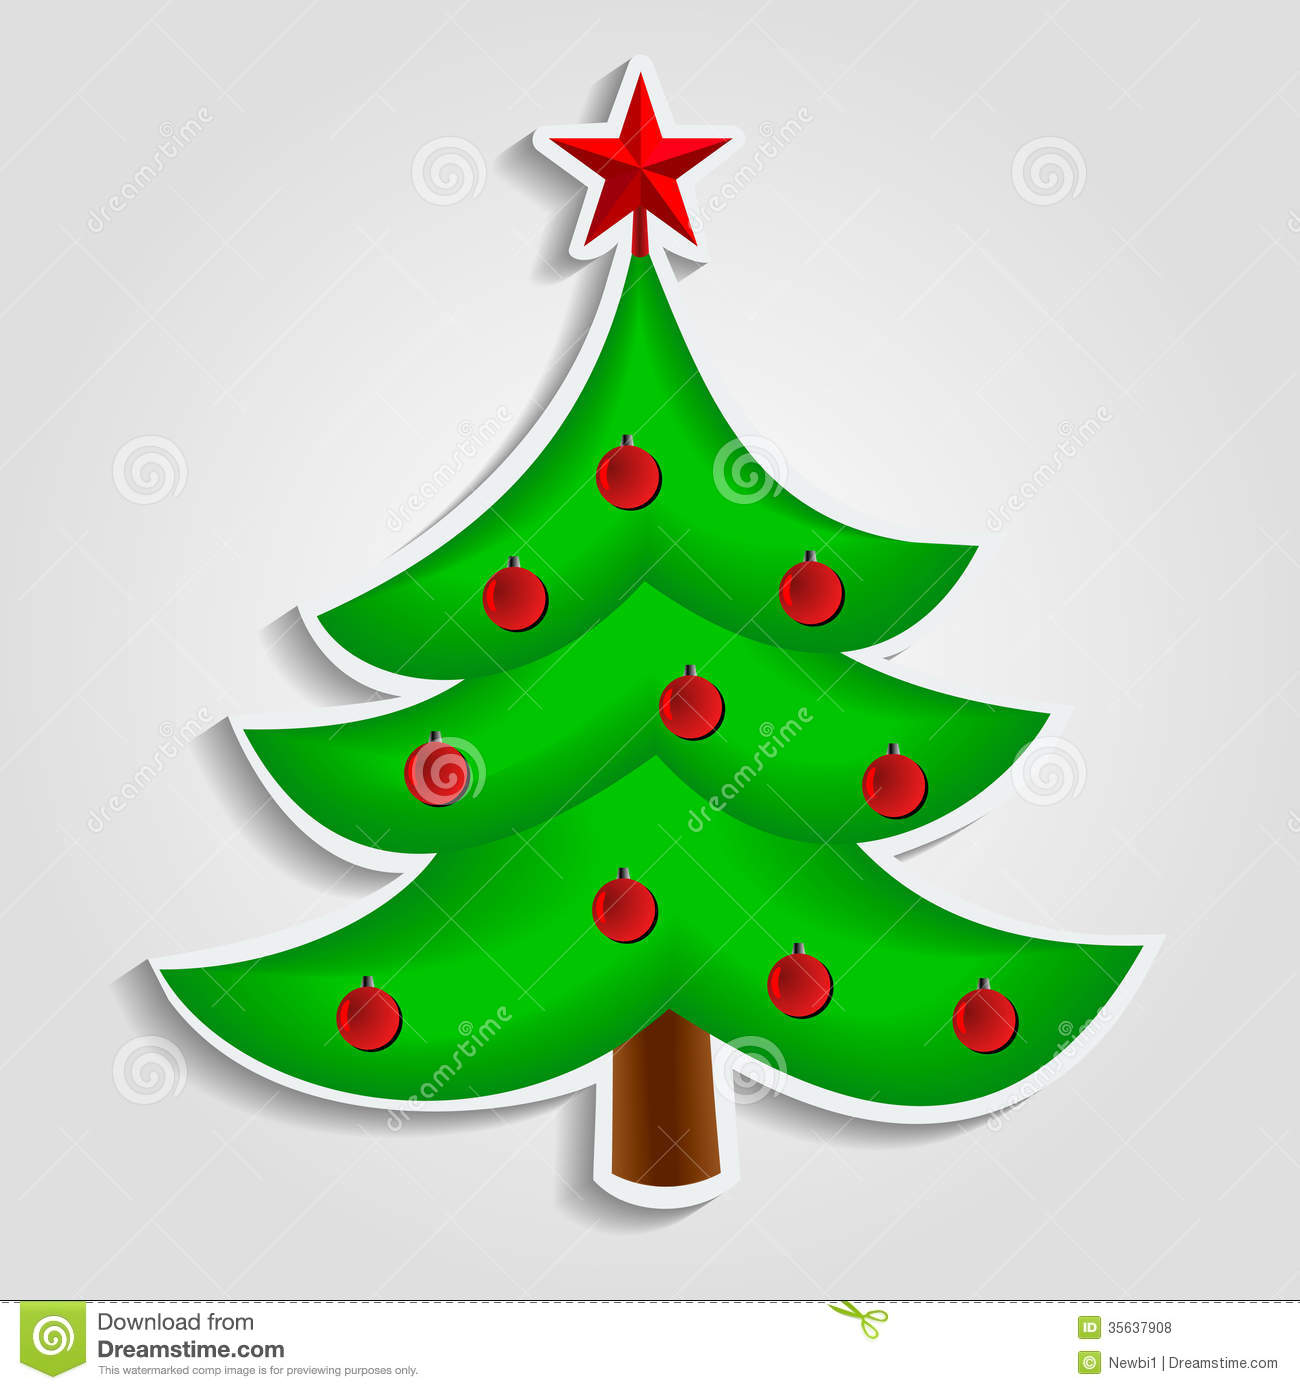 Christmas Tree Design Vector Images